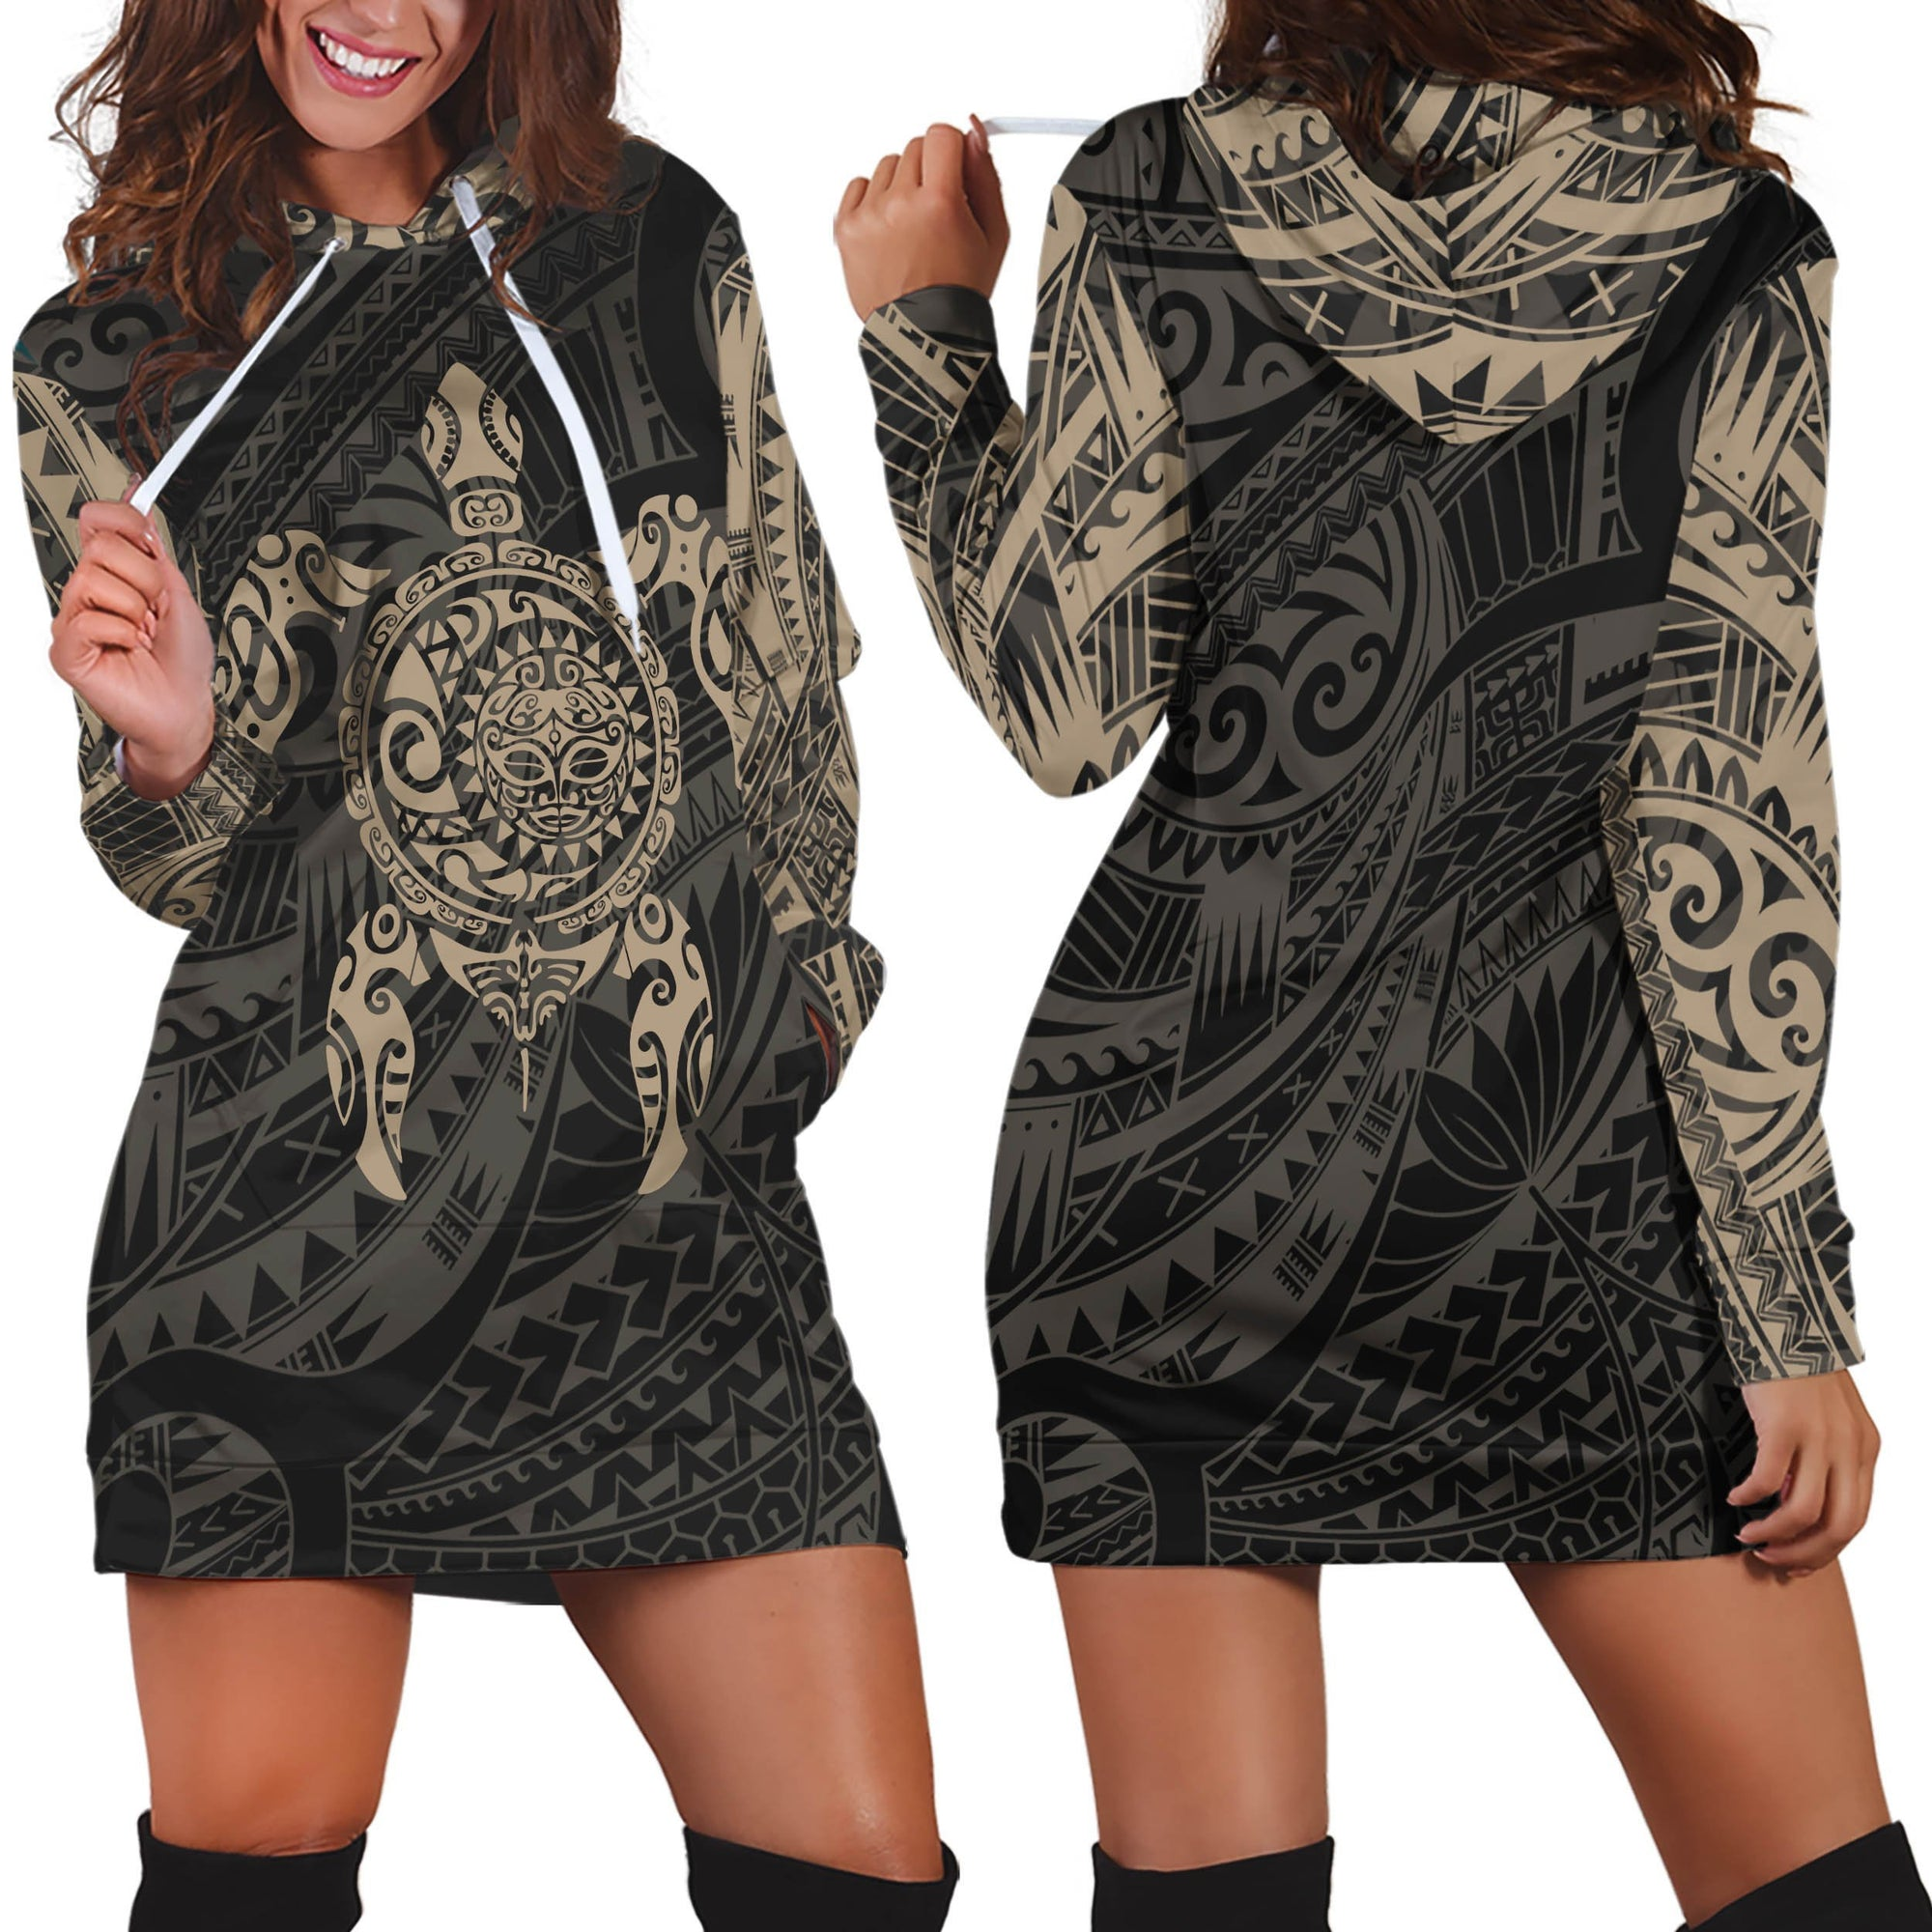 3D All Over Turtle Maori Tattoo Hoodie Dress Gold - Amaze Style™-Apparel